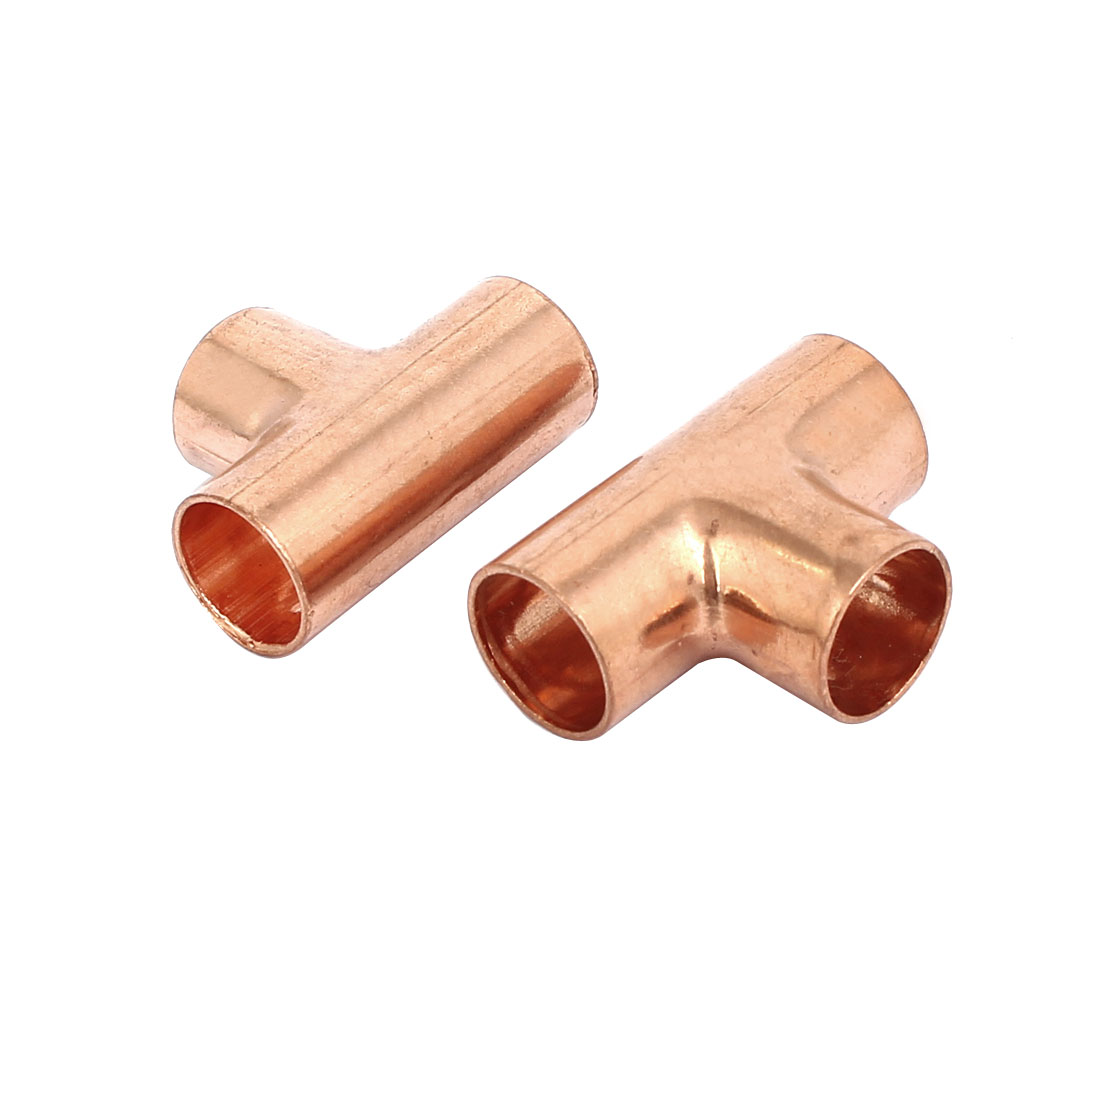 12mm Air Conditioner Copper Tee Joint Seperation Tube Connector 2pcs - image 2 de 2